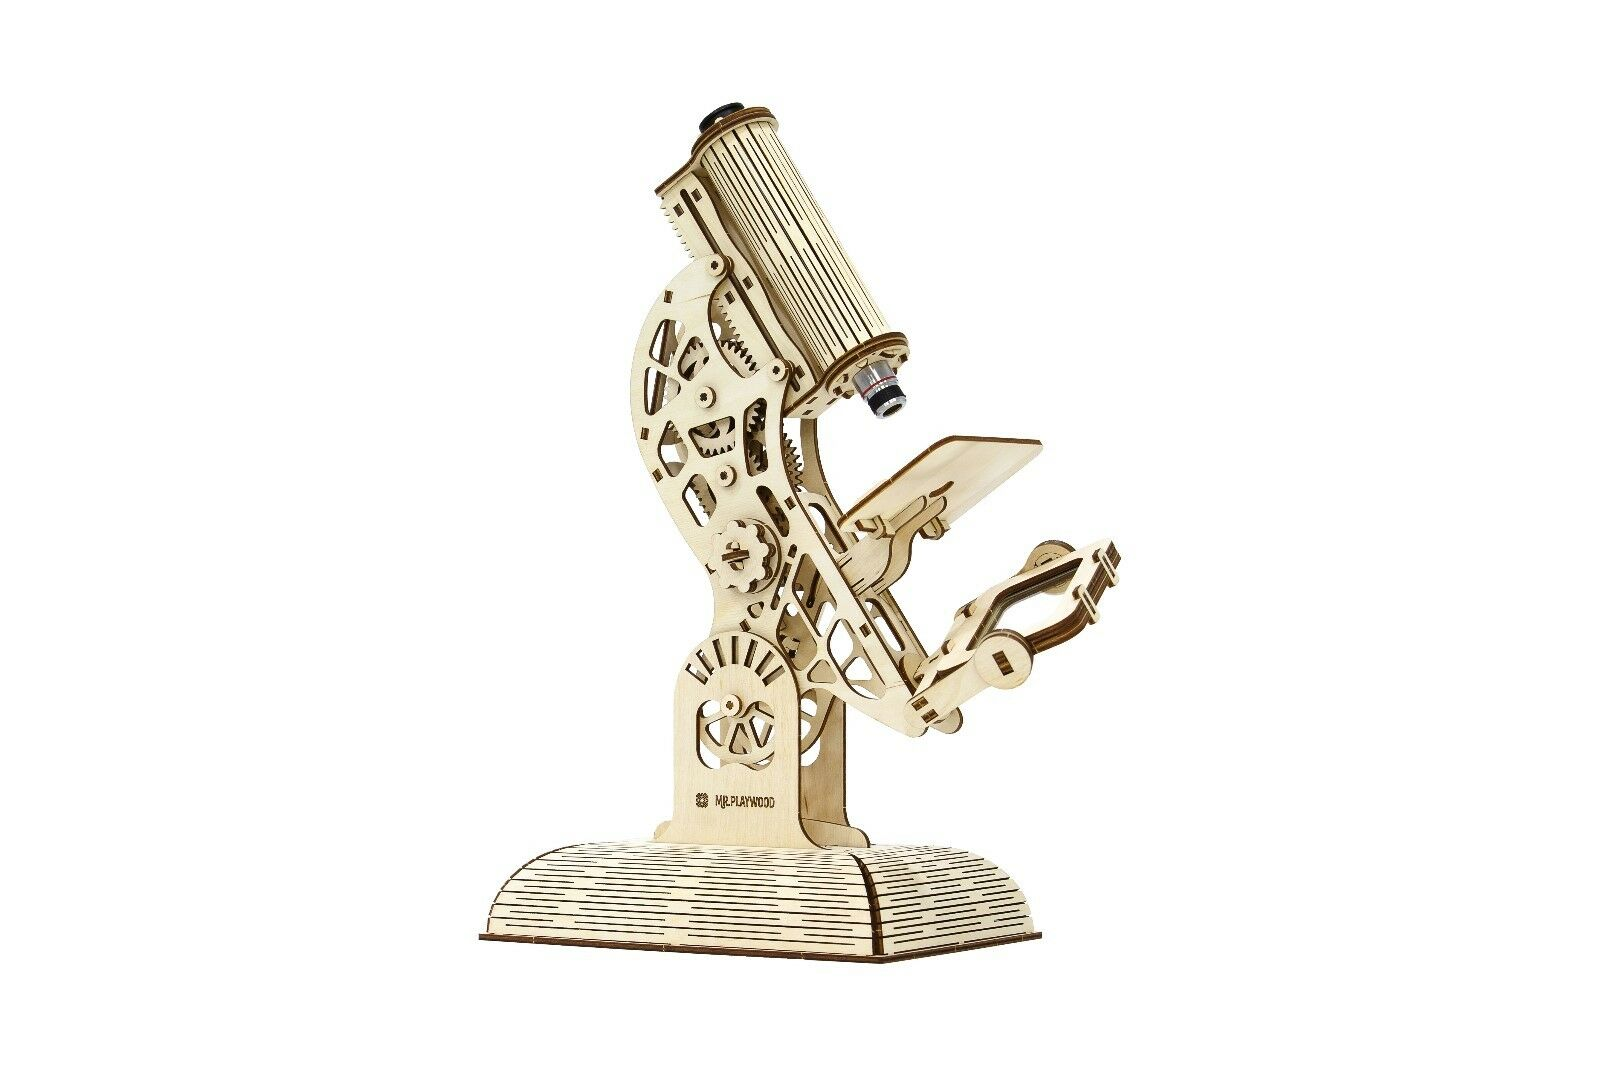 BRAND NEW Microscope - Mr PLAYWOOD 3D Mechanical Wooden Model & Puzzle kit